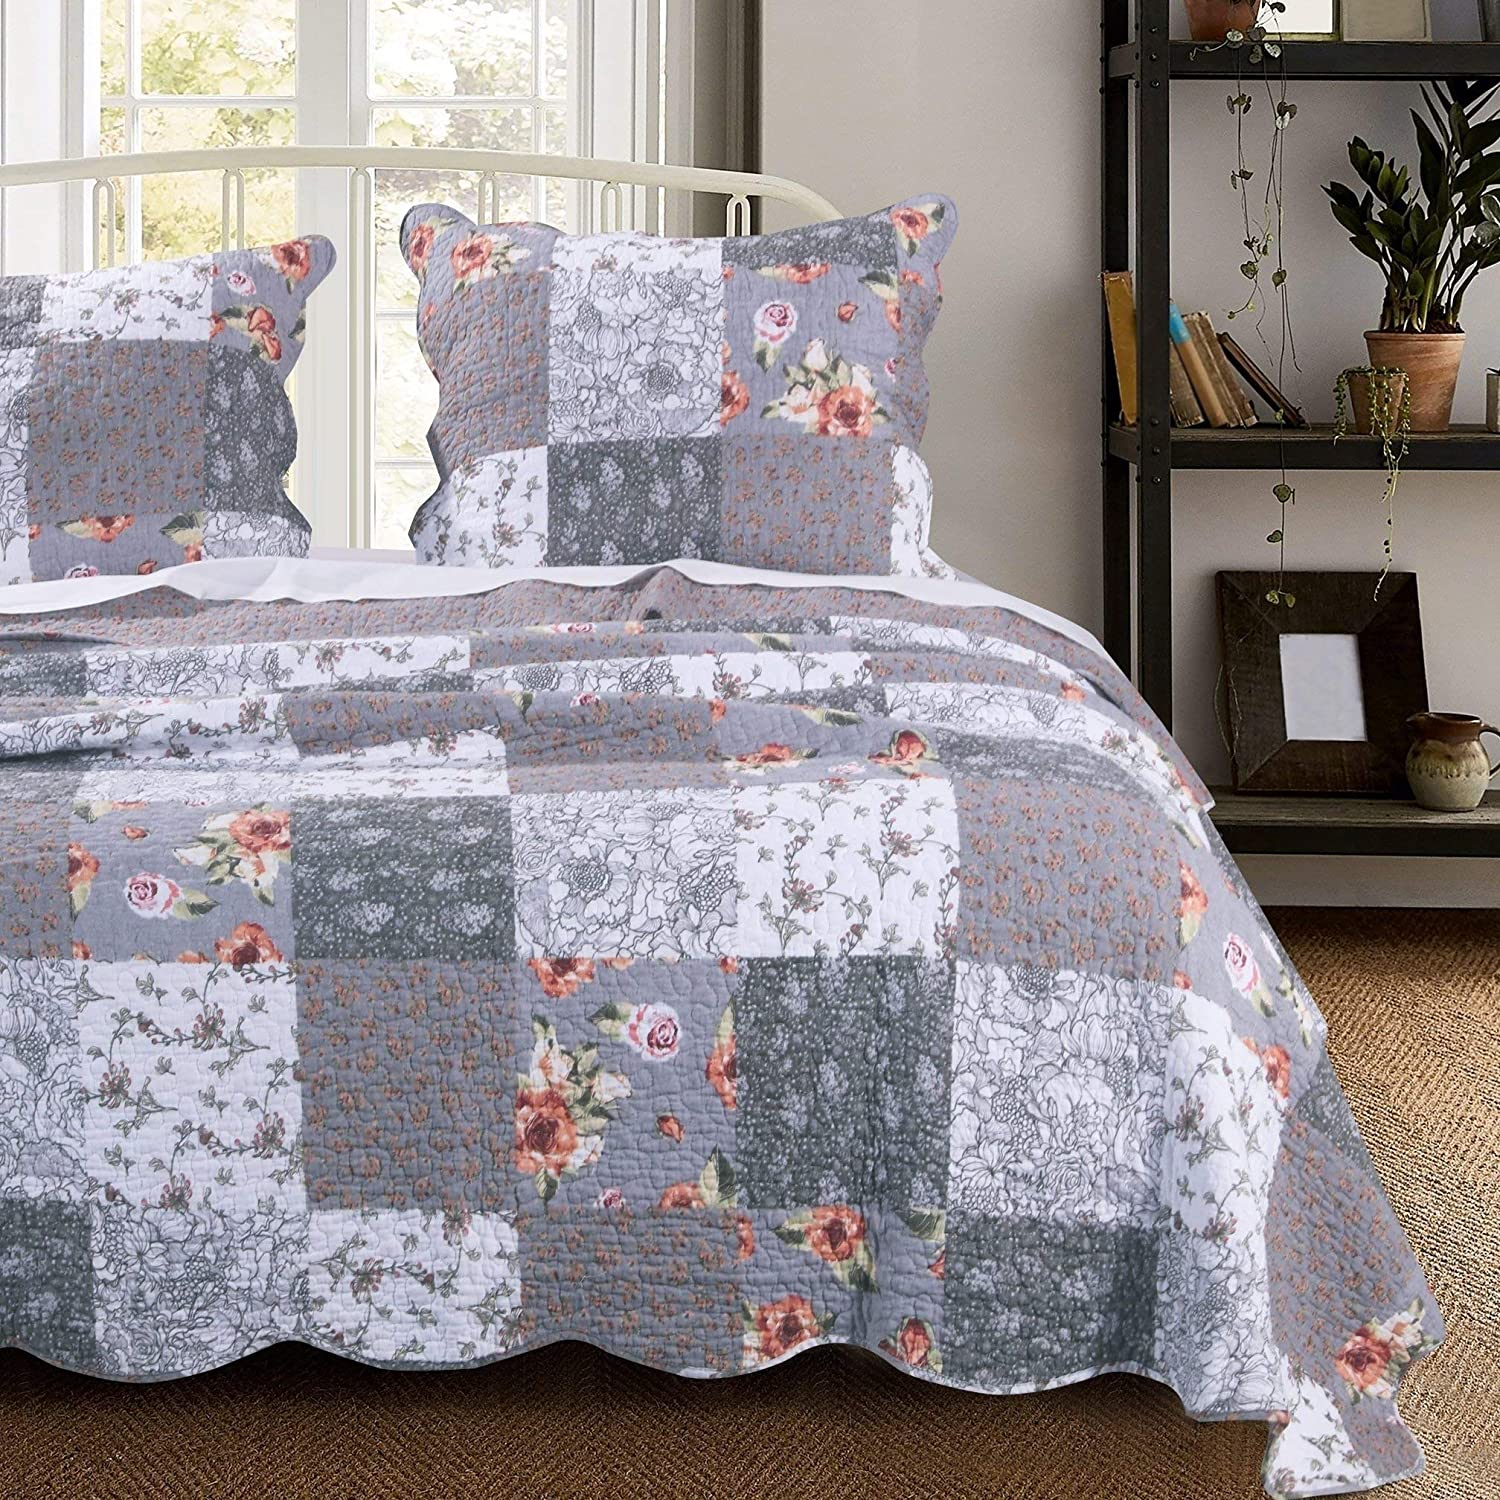 Amazon Com Misc 3 Piece Gray Patchwork Quilt King Size Set Farmhouse Theme Floral Plaid Square Checks Pattern Bedding Oversized And Reversible To Flowers Print Home Kitchen